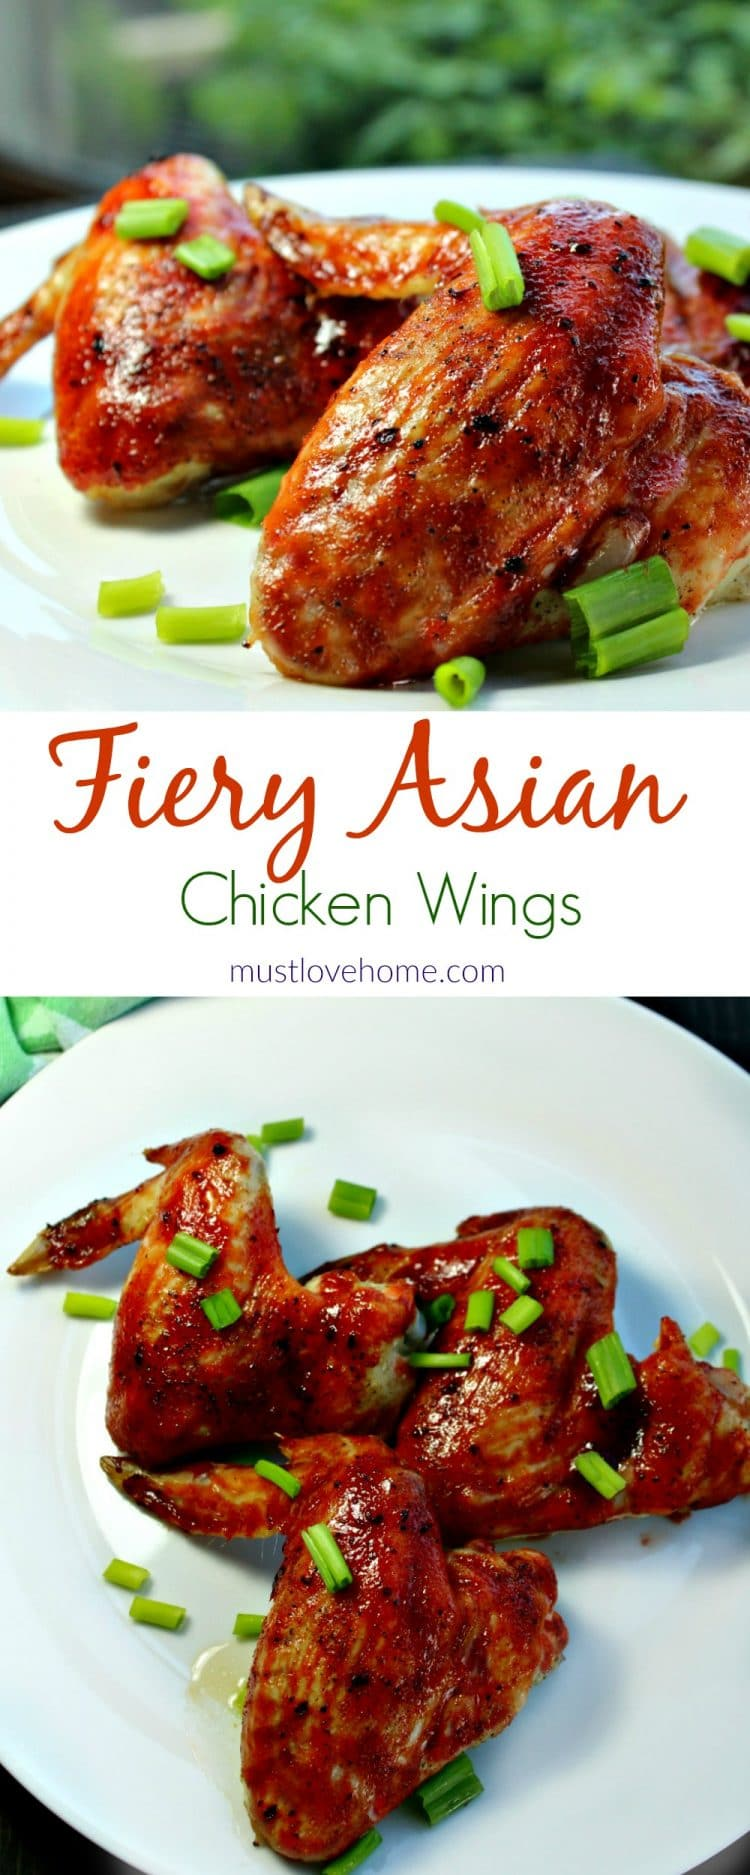 Make these AMAZING crispy Fiery Asian Wings anytime in your oven! Makes perfect smokin' hot wings every time!